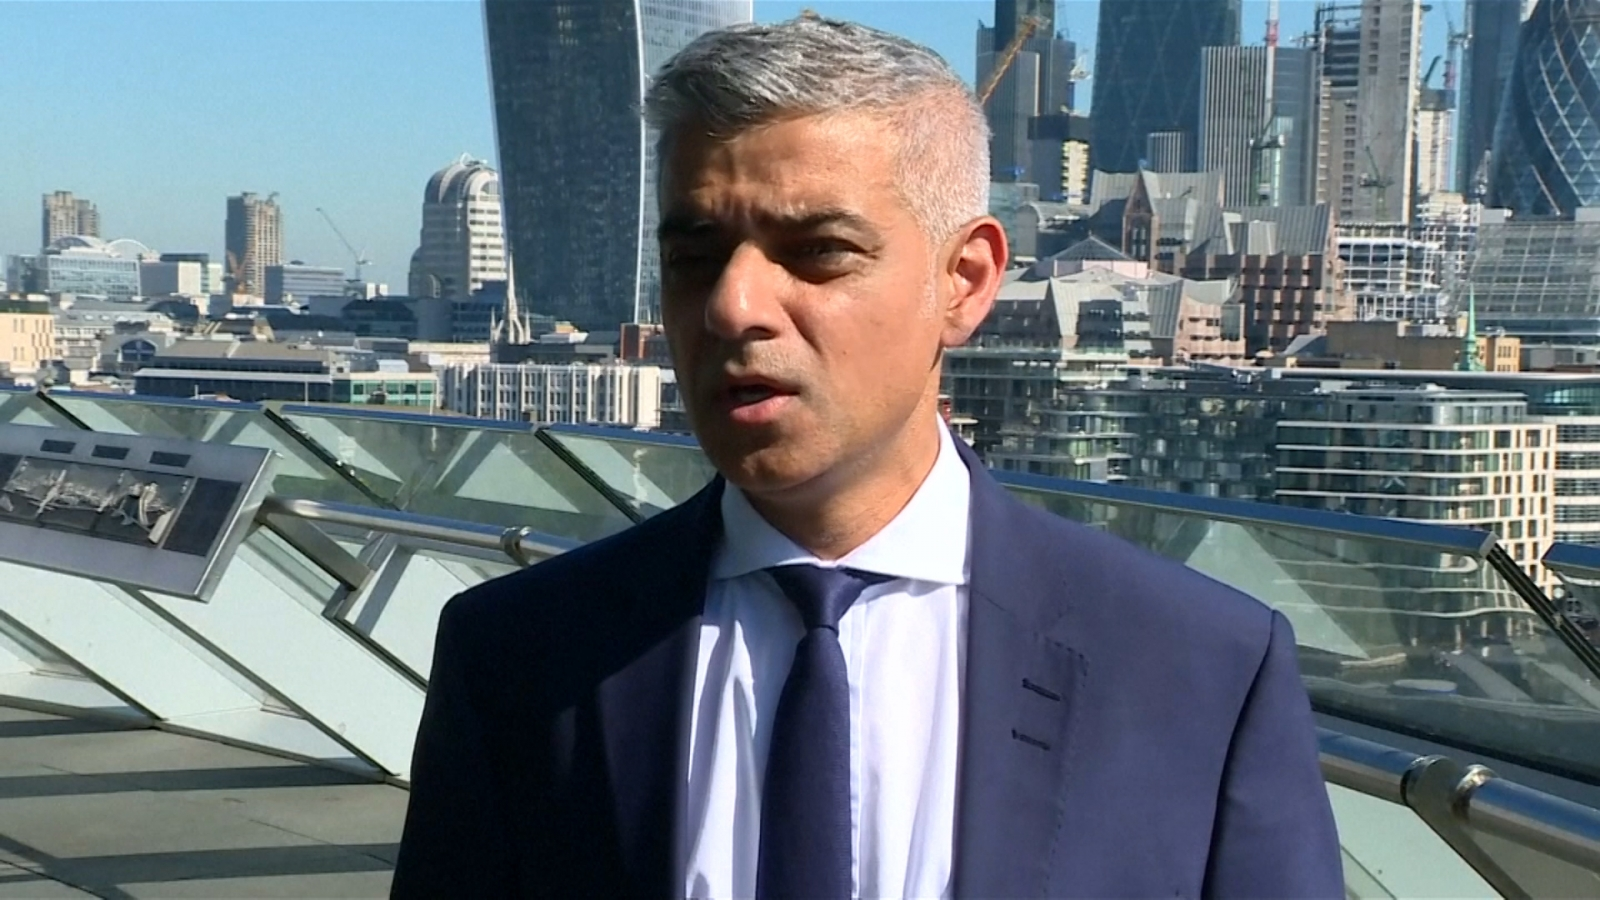 sadiq-khan-urges-londoners-to-be-calm-but-vigilant-after-finsbury-park-mosque-attack